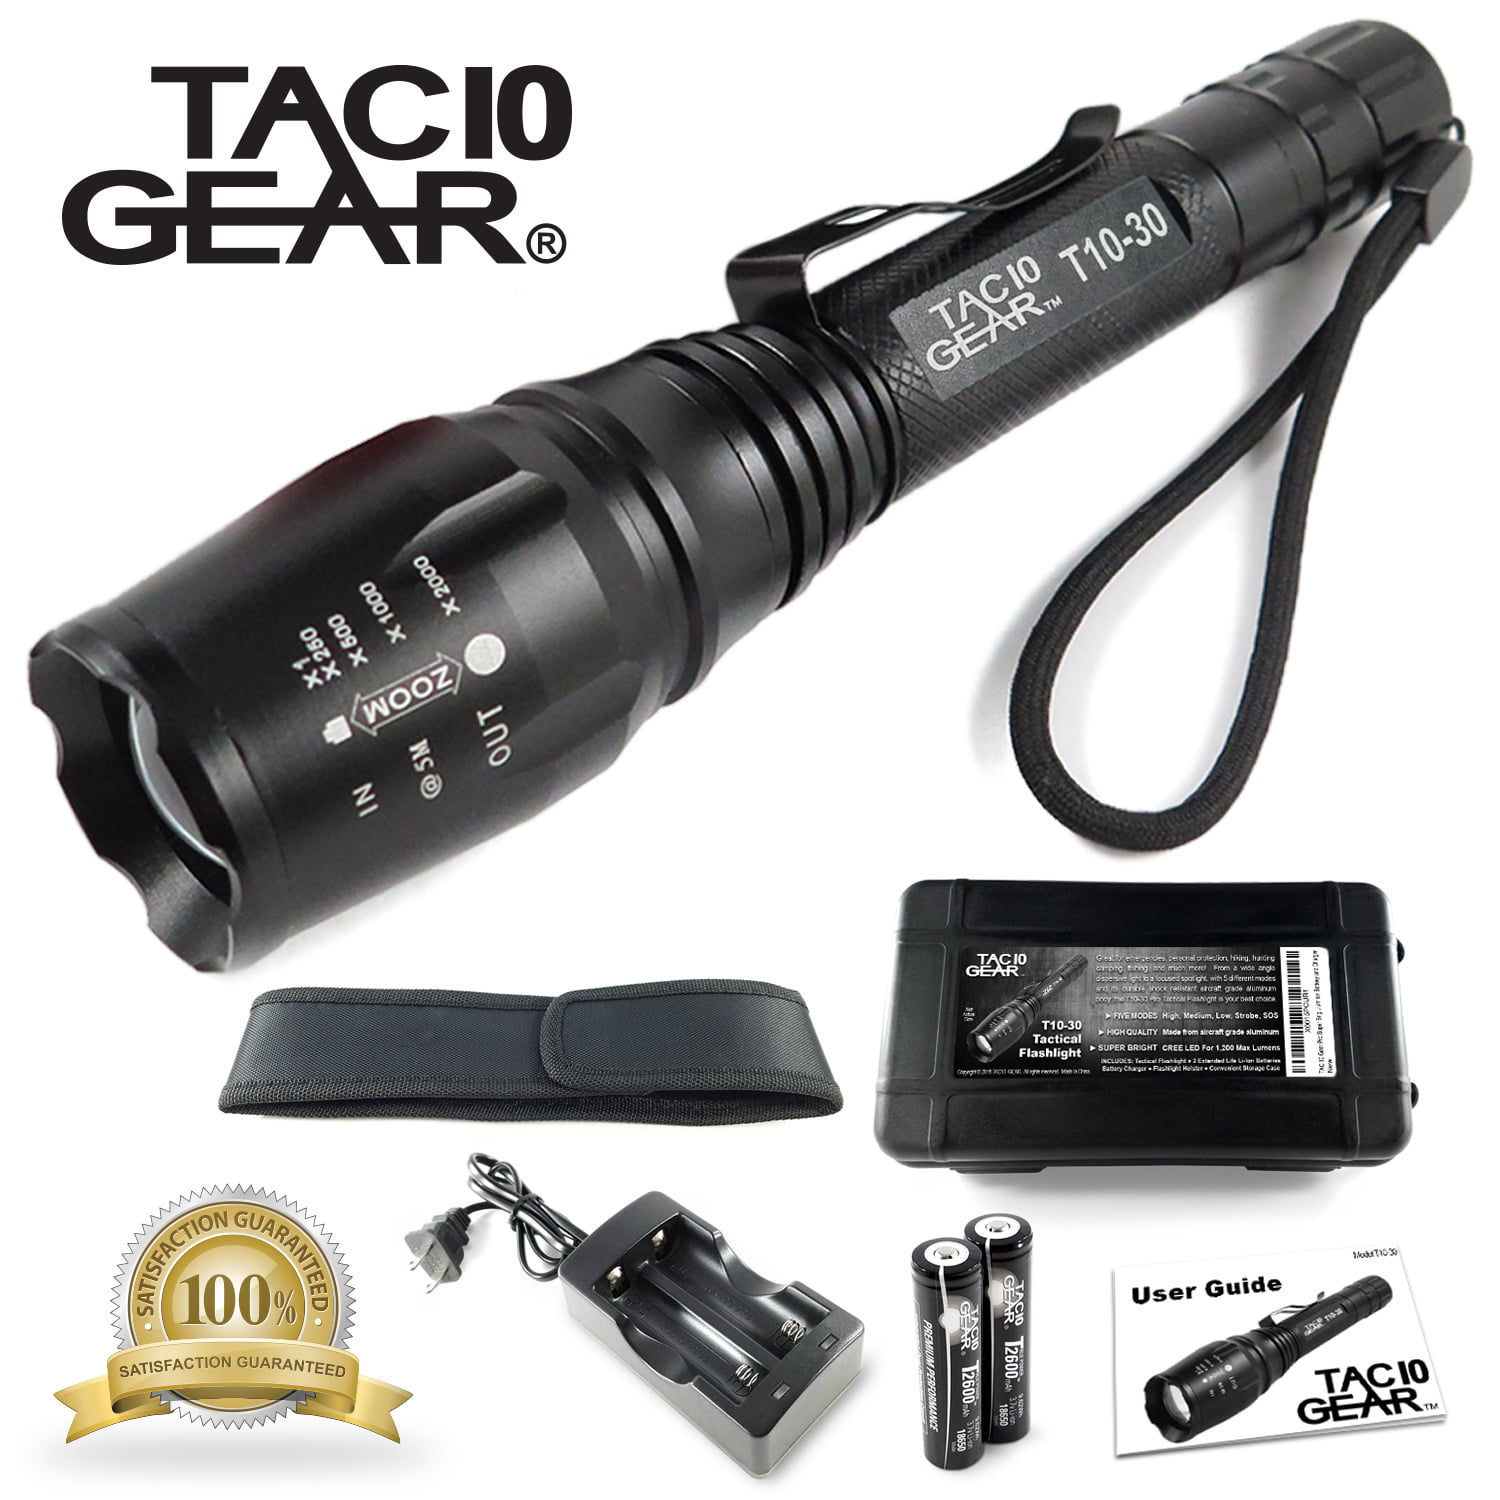 TAC10 GEAR Tactical LED Flashlight XML-T6 1,000 Lumens Water Resistant with Rechargeable Li-Ion Batteries, Charger,... by